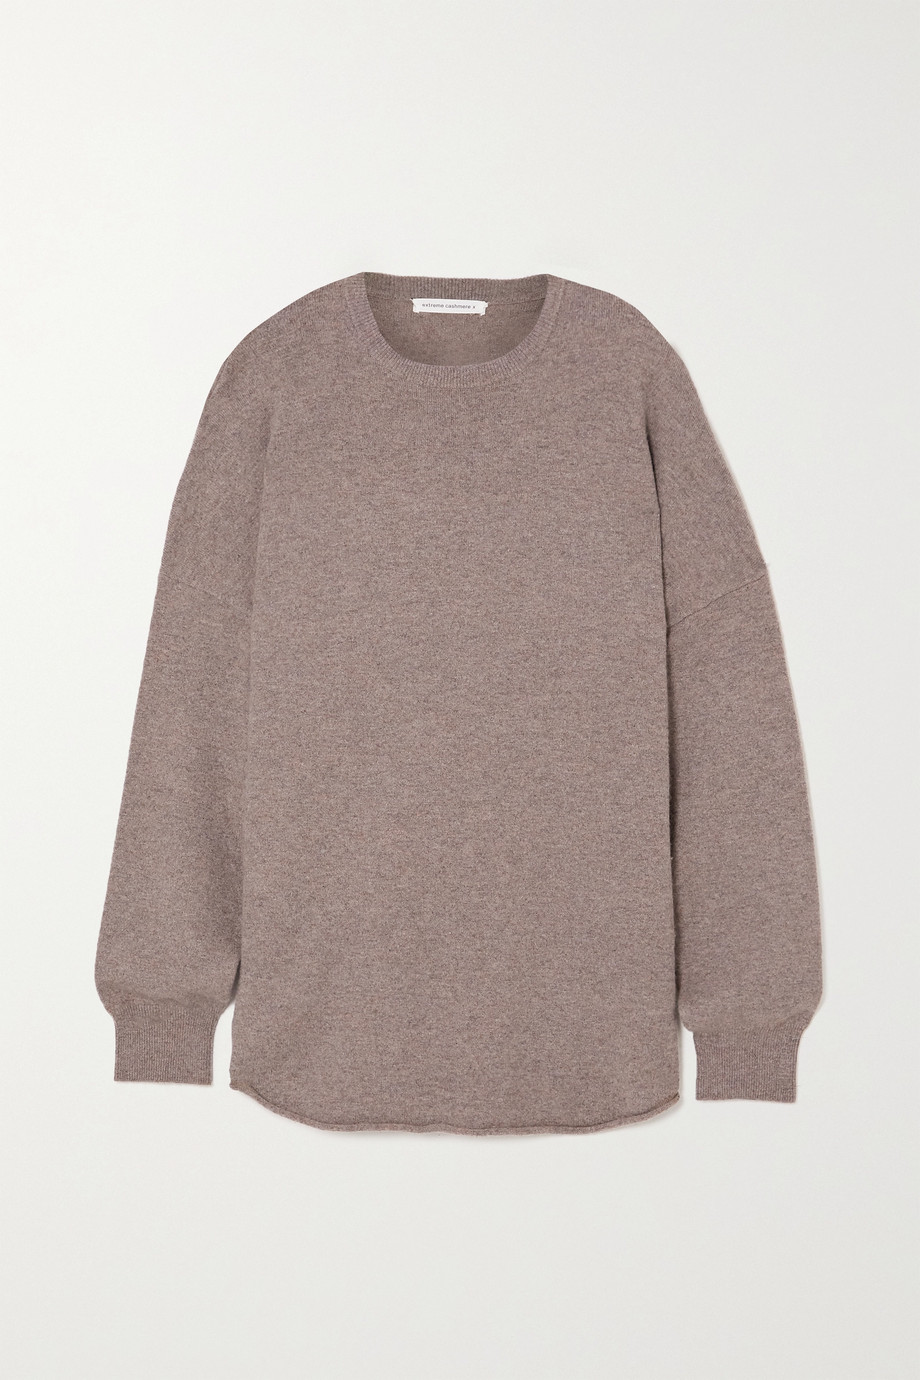 EXTREME CASHMERE N°53 Crew Hop cashmere-blend sweater